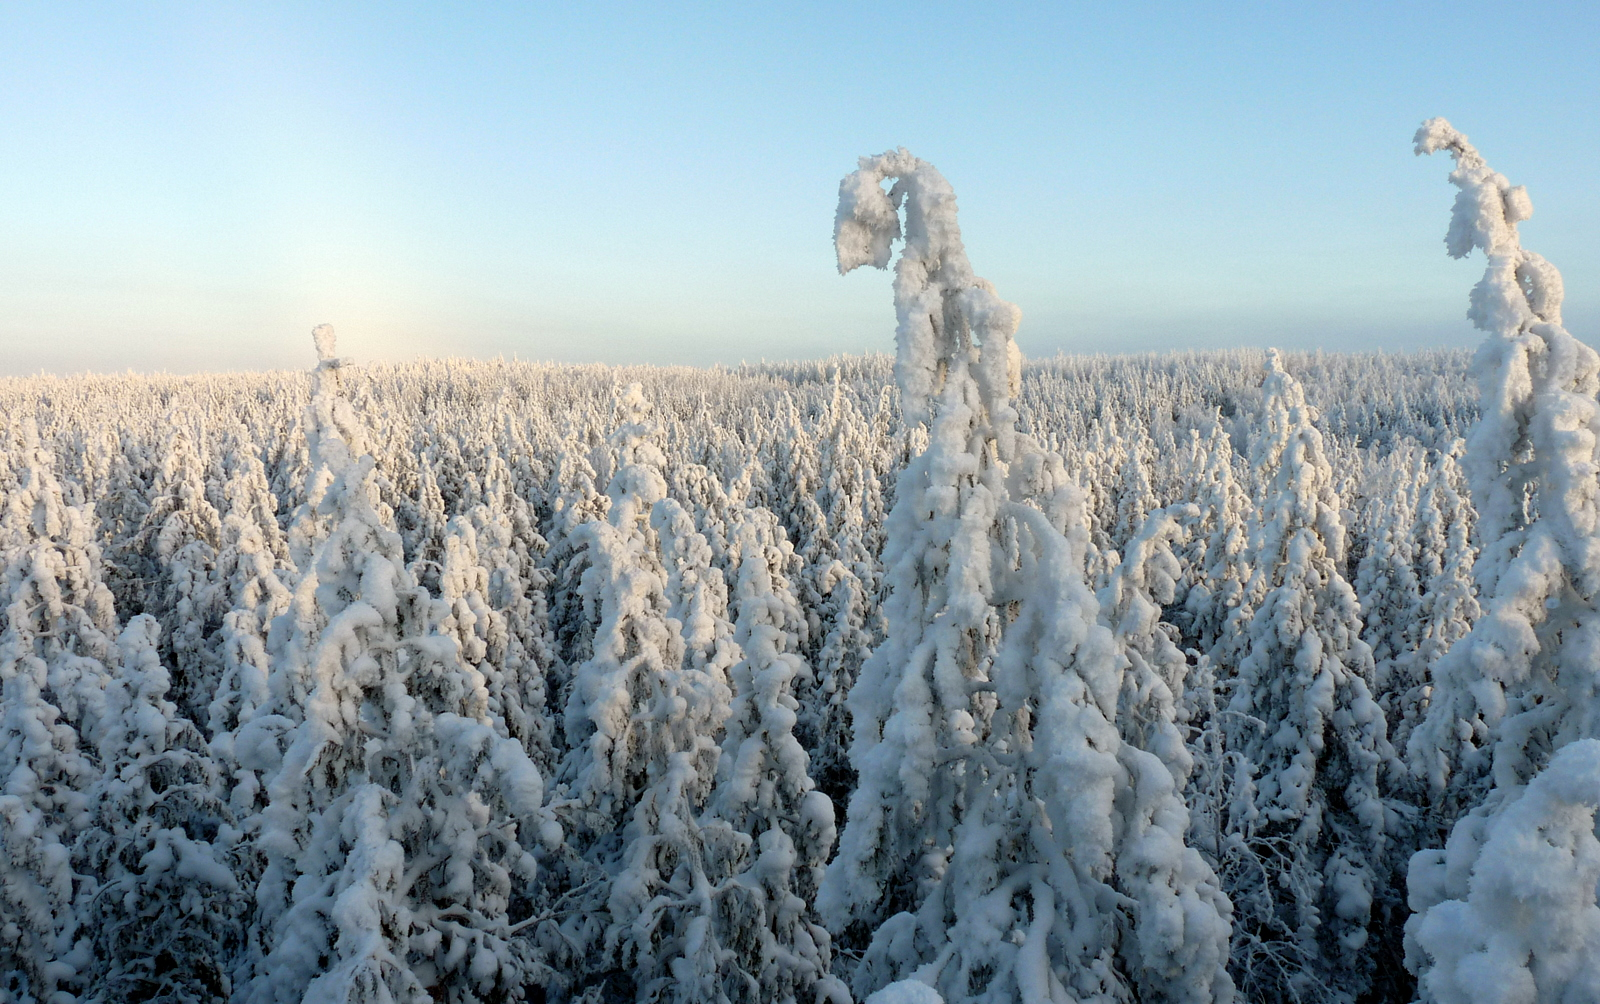 Boreal forest under snow